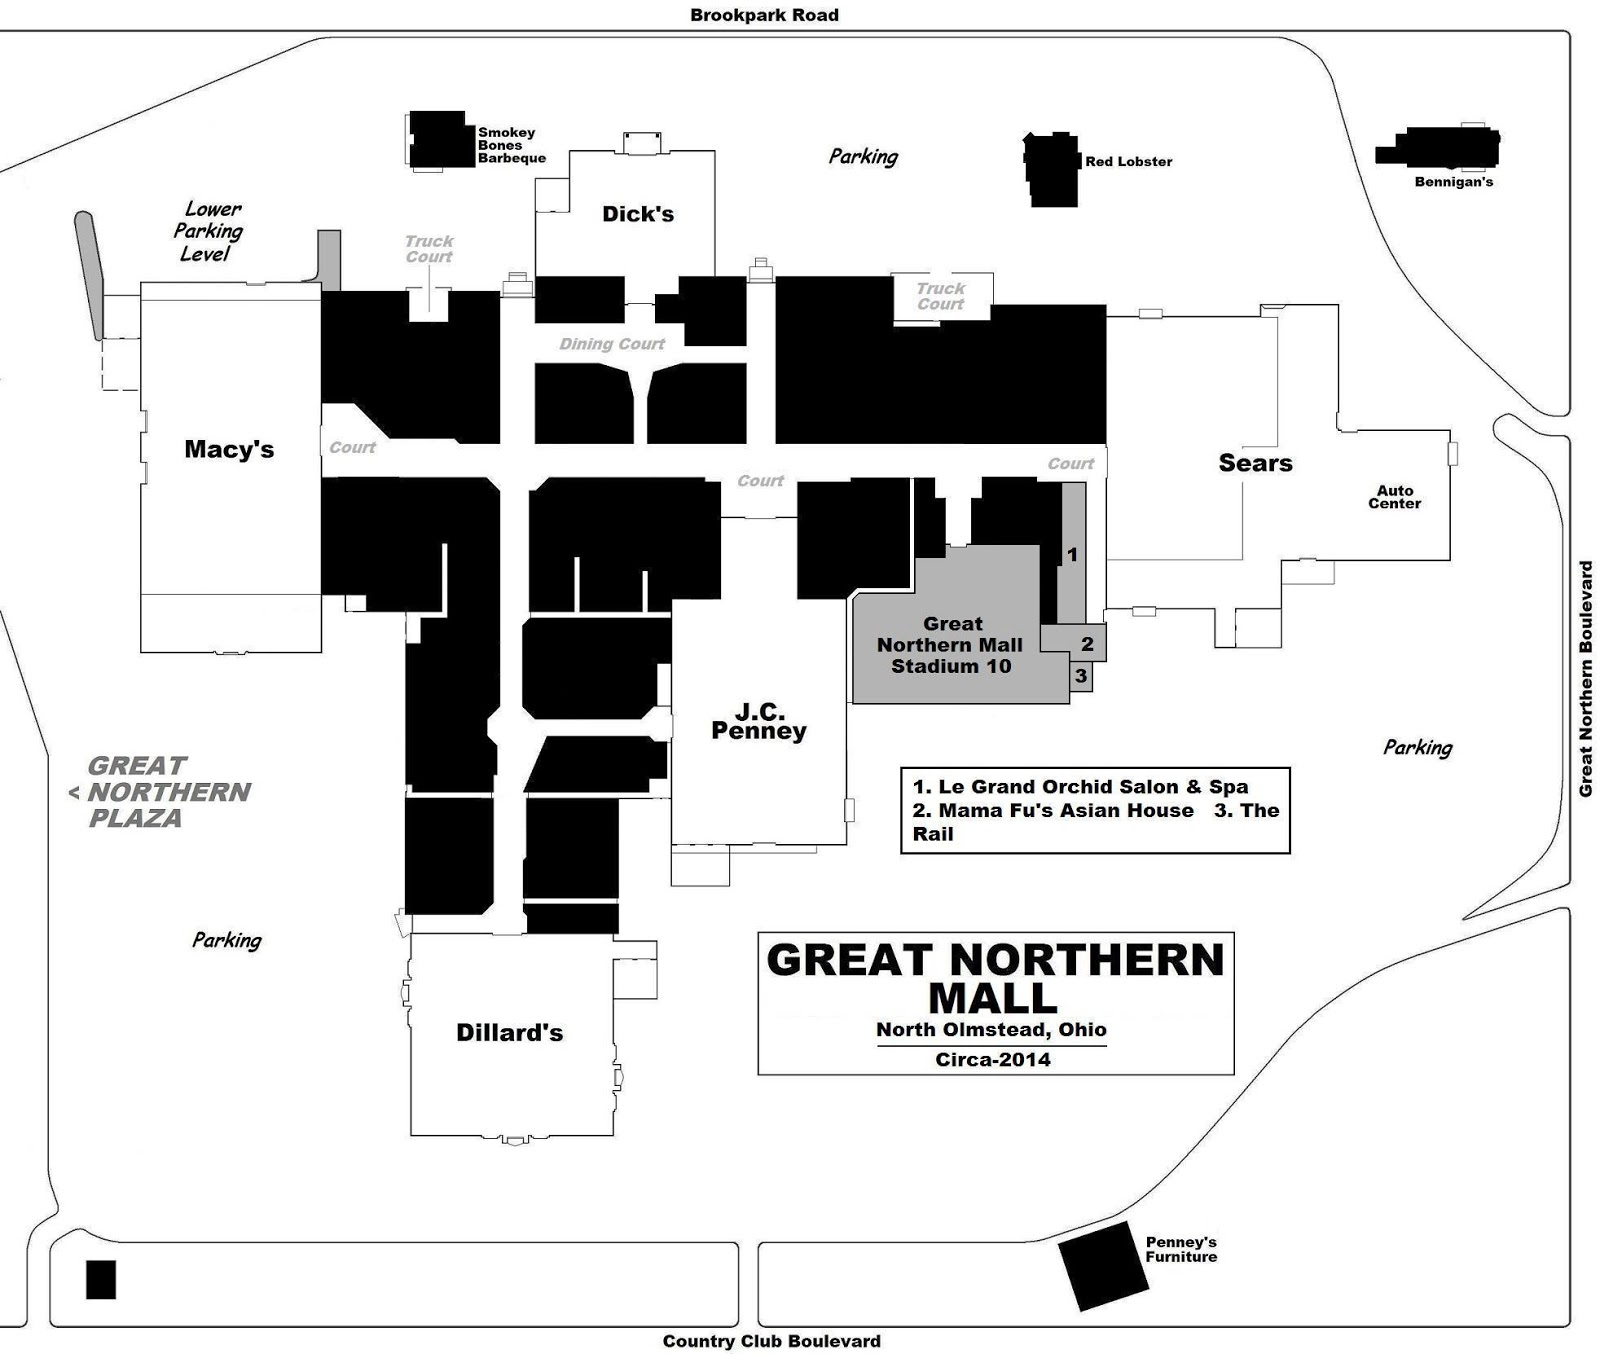 west wing office space layout circa 1990. More Renovations Were Done Between 2011 And 2013. The Food Court Was Moved In Front Of Dick\u0027s Sporting Goods, With Old Culinary Complex Being Gutted West Wing Office Space Layout Circa 1990